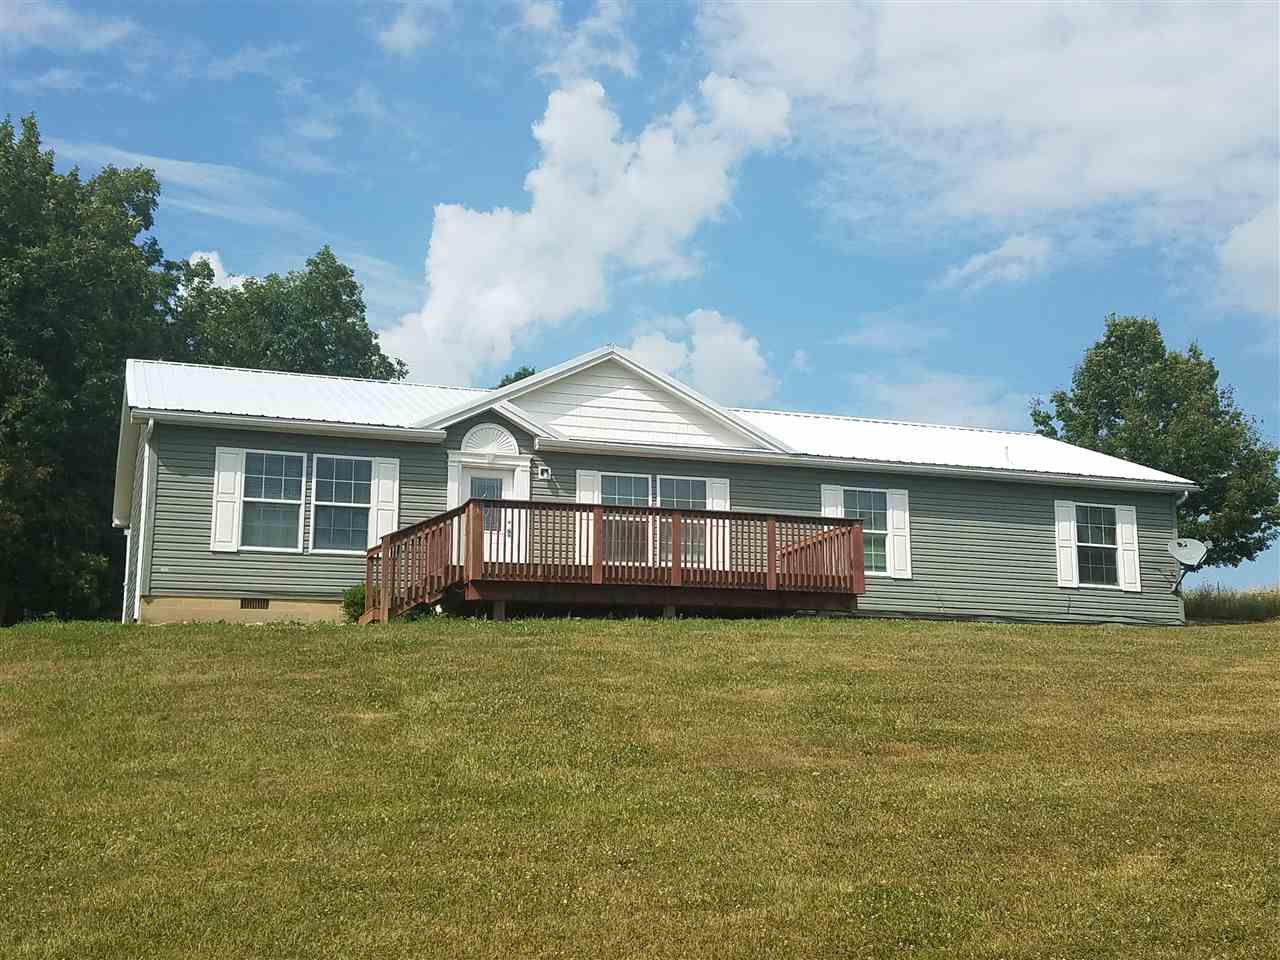 Photo 1 for 3345 Arnolds Creek Rd Dry Ridge, KY 41035